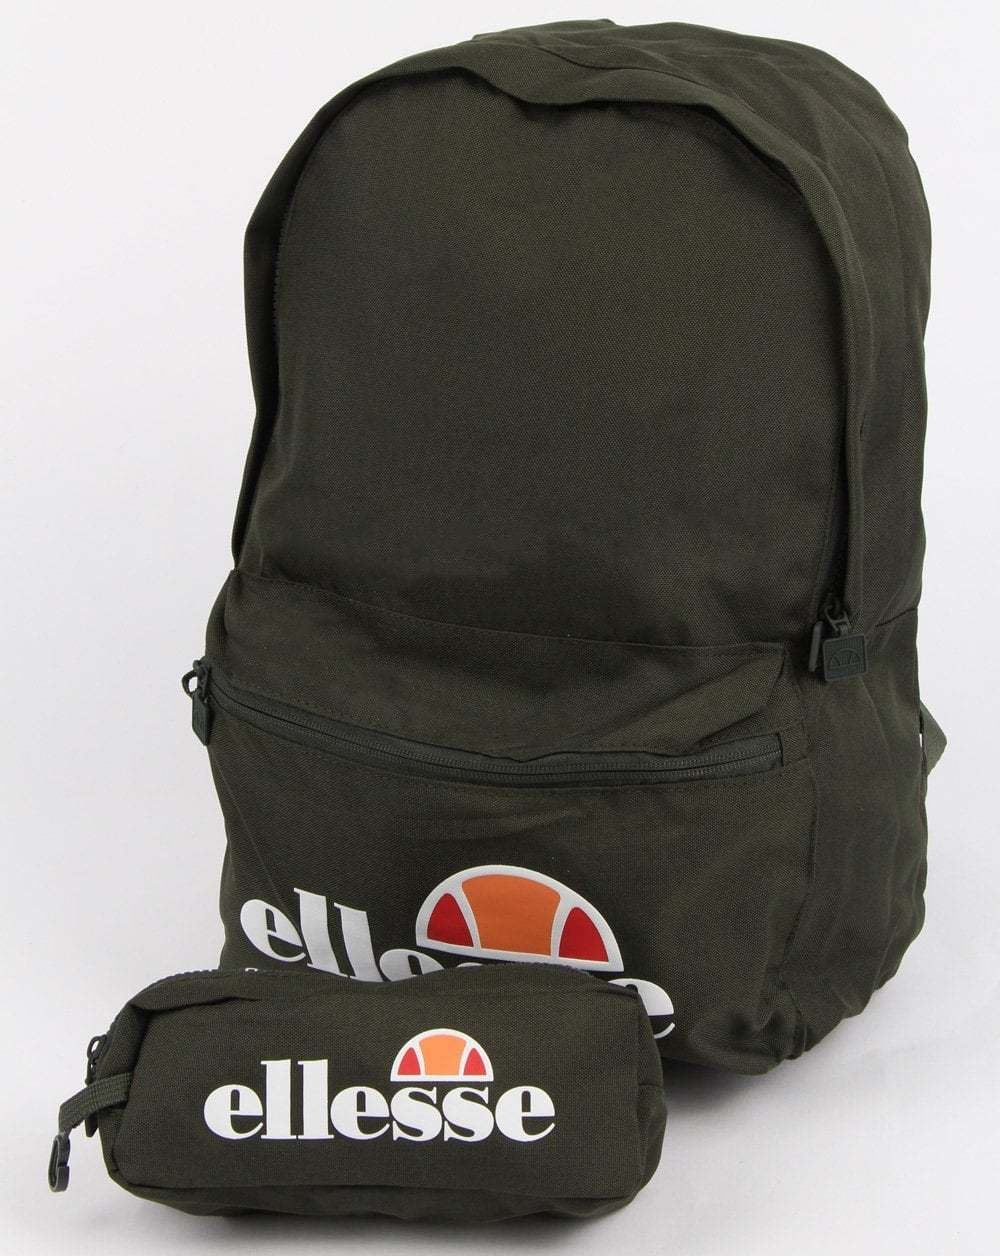 Description The Ellesse Rolby backpack comes with a free pencil case,  perfect for carrying your essential items to, or from, a workout down at  the gym or ... 5f8c1289f5